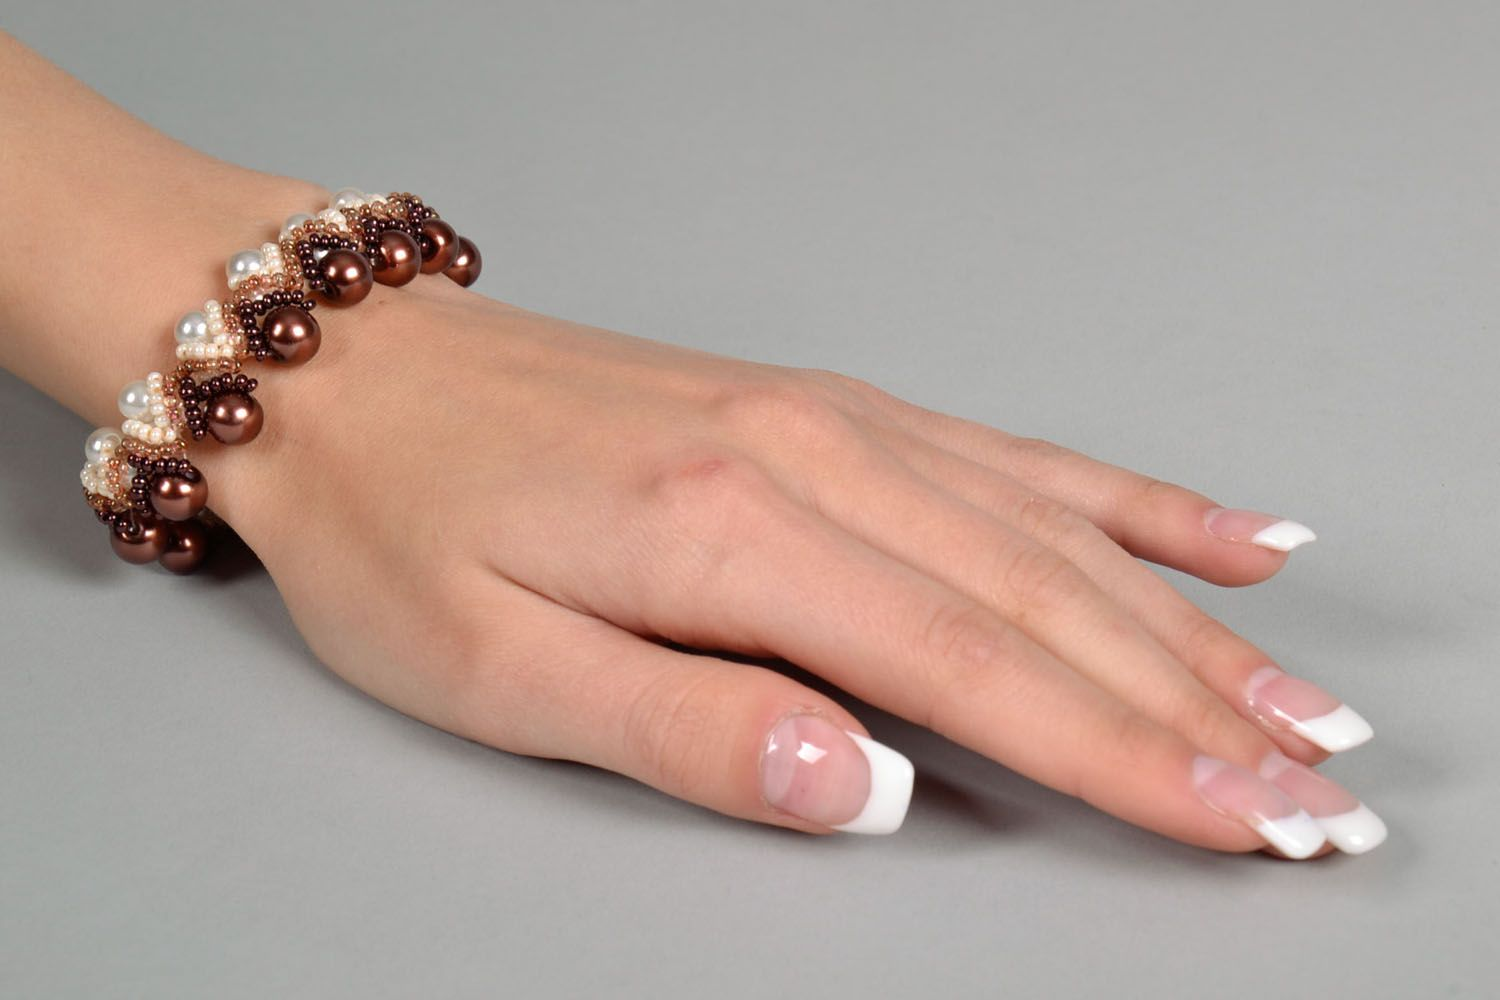 Bracelet with artificial pearls photo 5